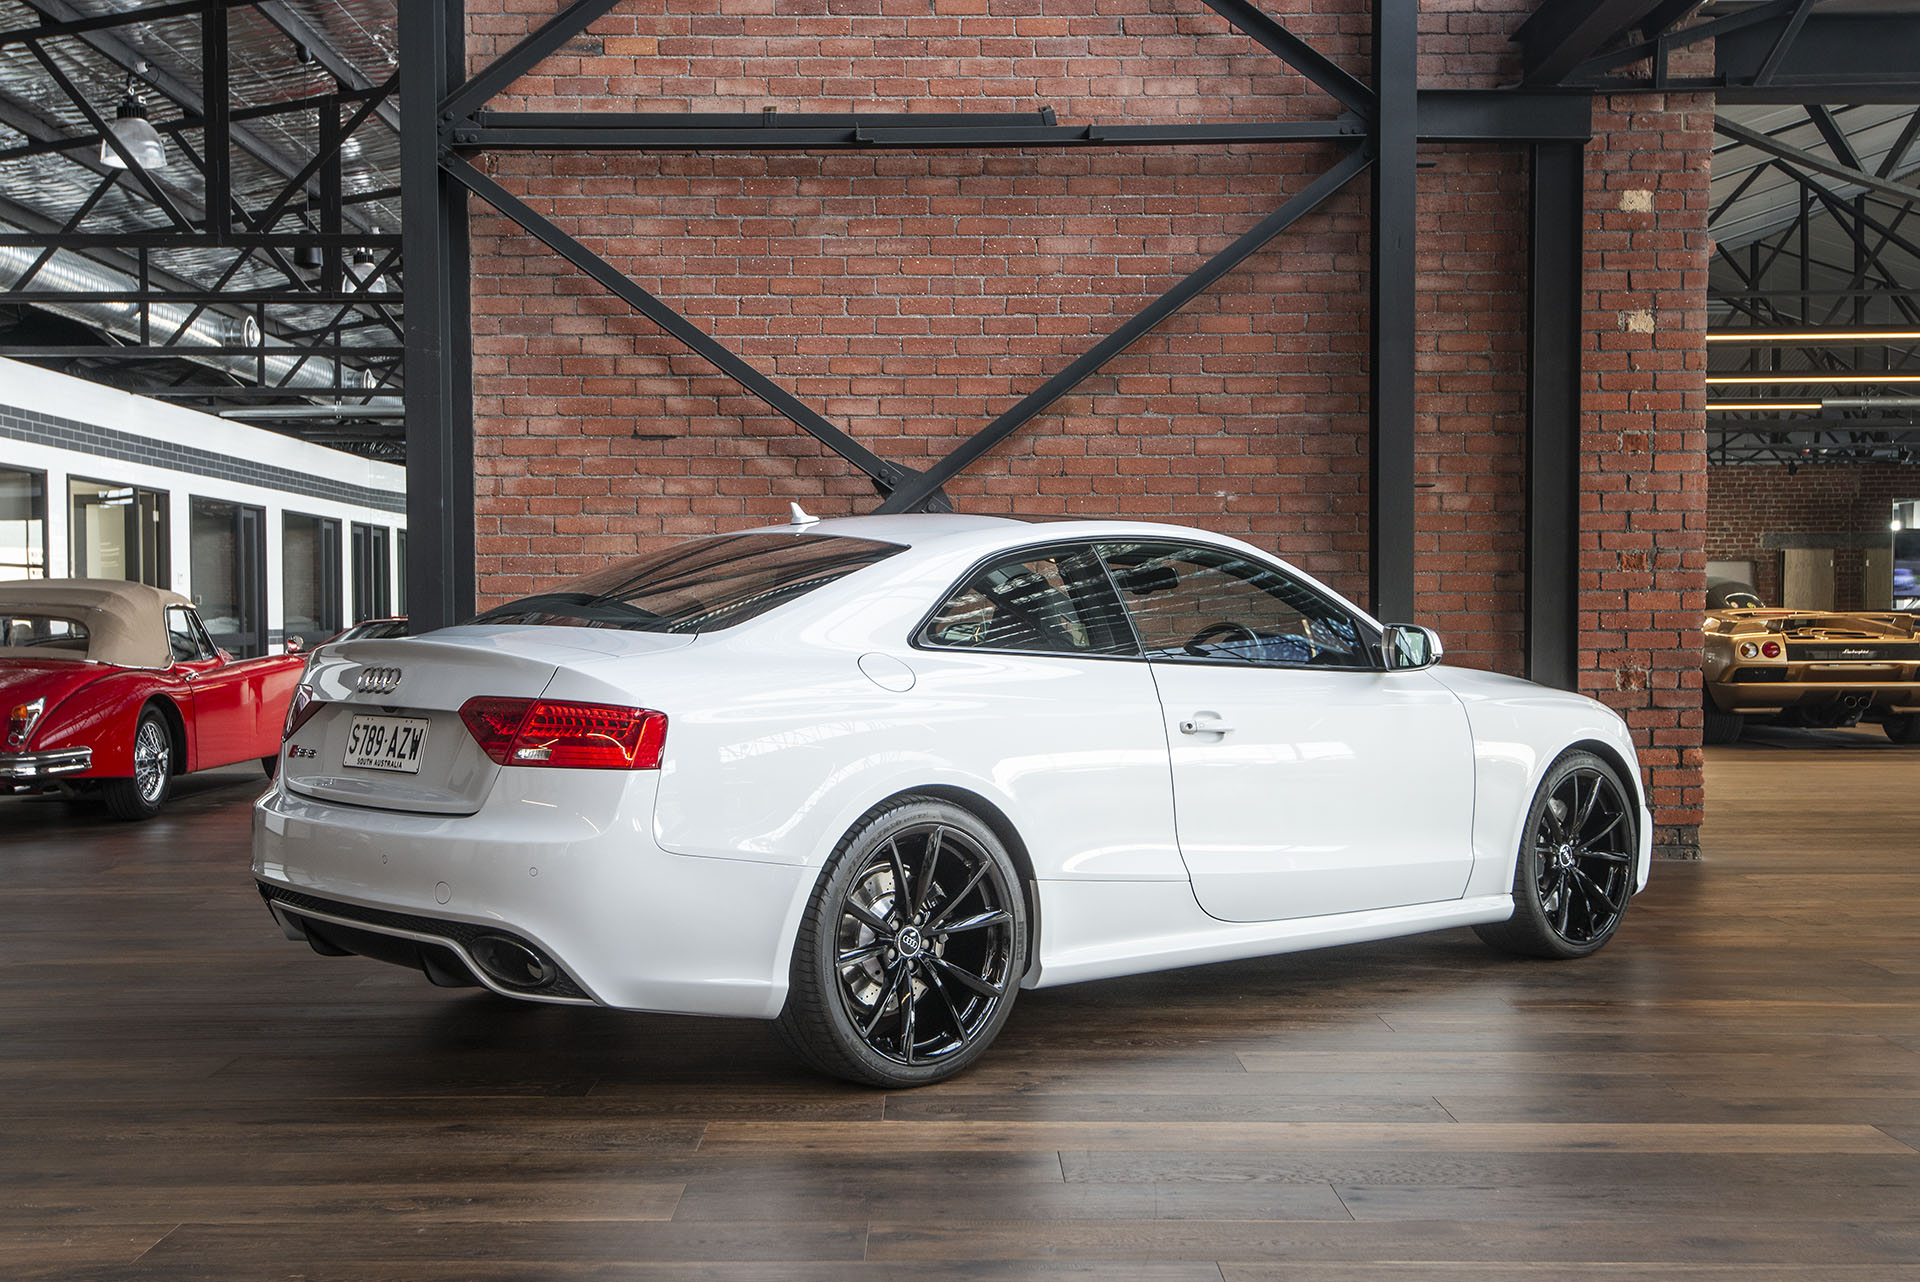 Four Door Sports Cars >> 2013 Audi RS5 8T Coupe (MY14) - Richmonds - Classic and ...